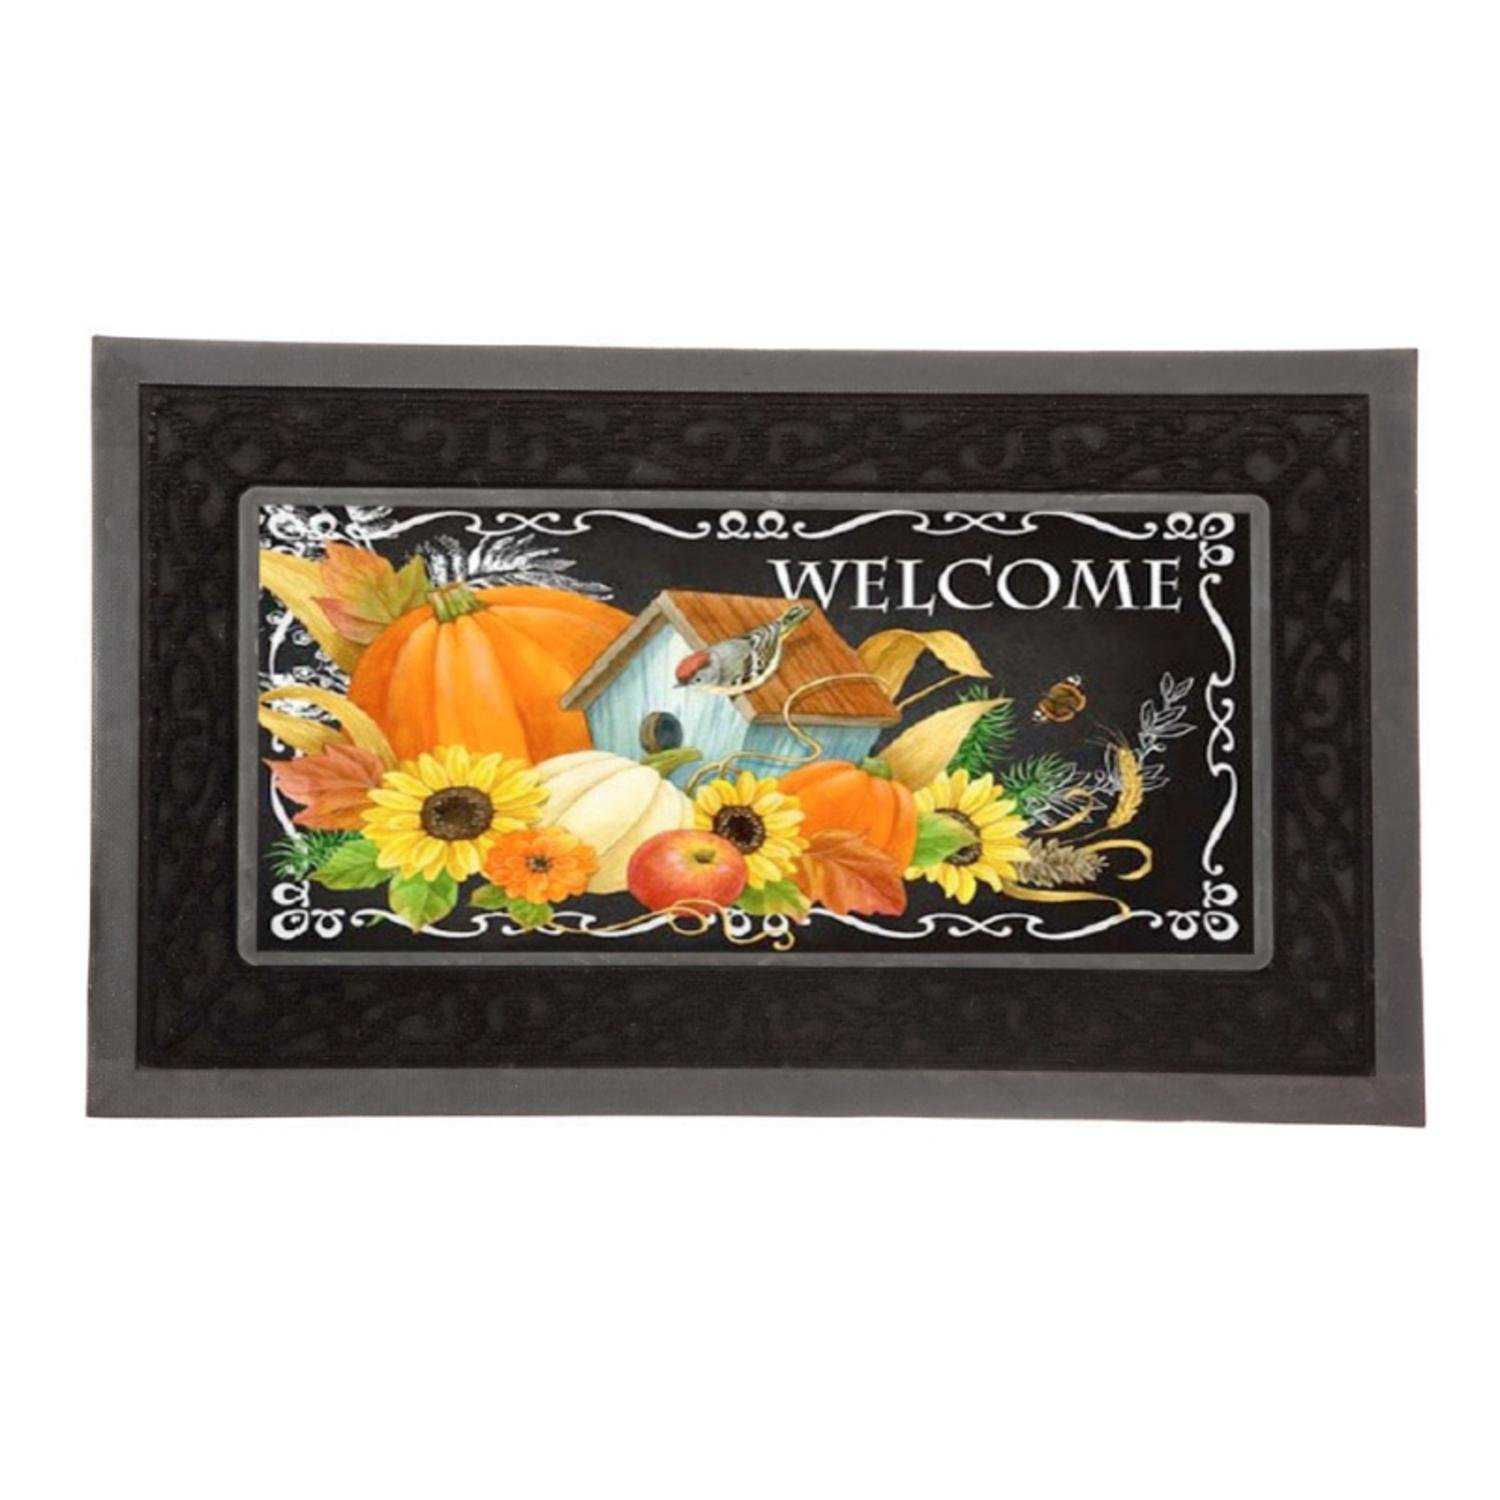 Evergreen Harvest Greetings Decorative Mat Insert, 10 x 22 inches Evergreen Enterprises